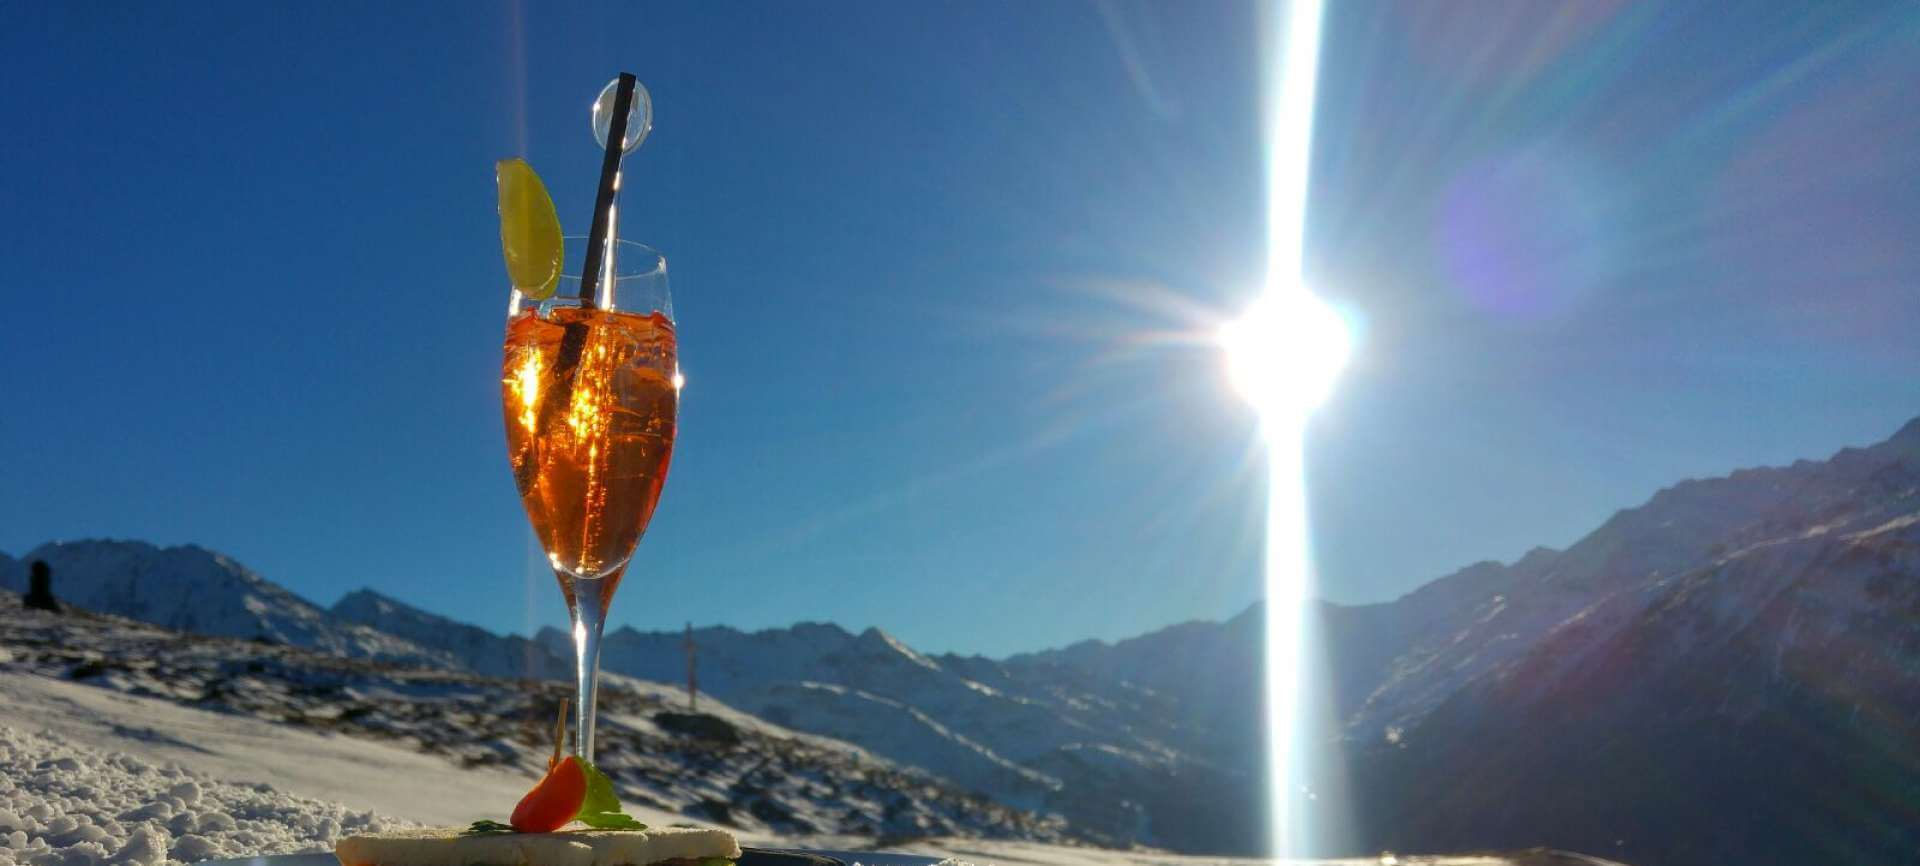 Sun, snow and the deep blue sky - these are the most important ingredients of a perfect skiing day.